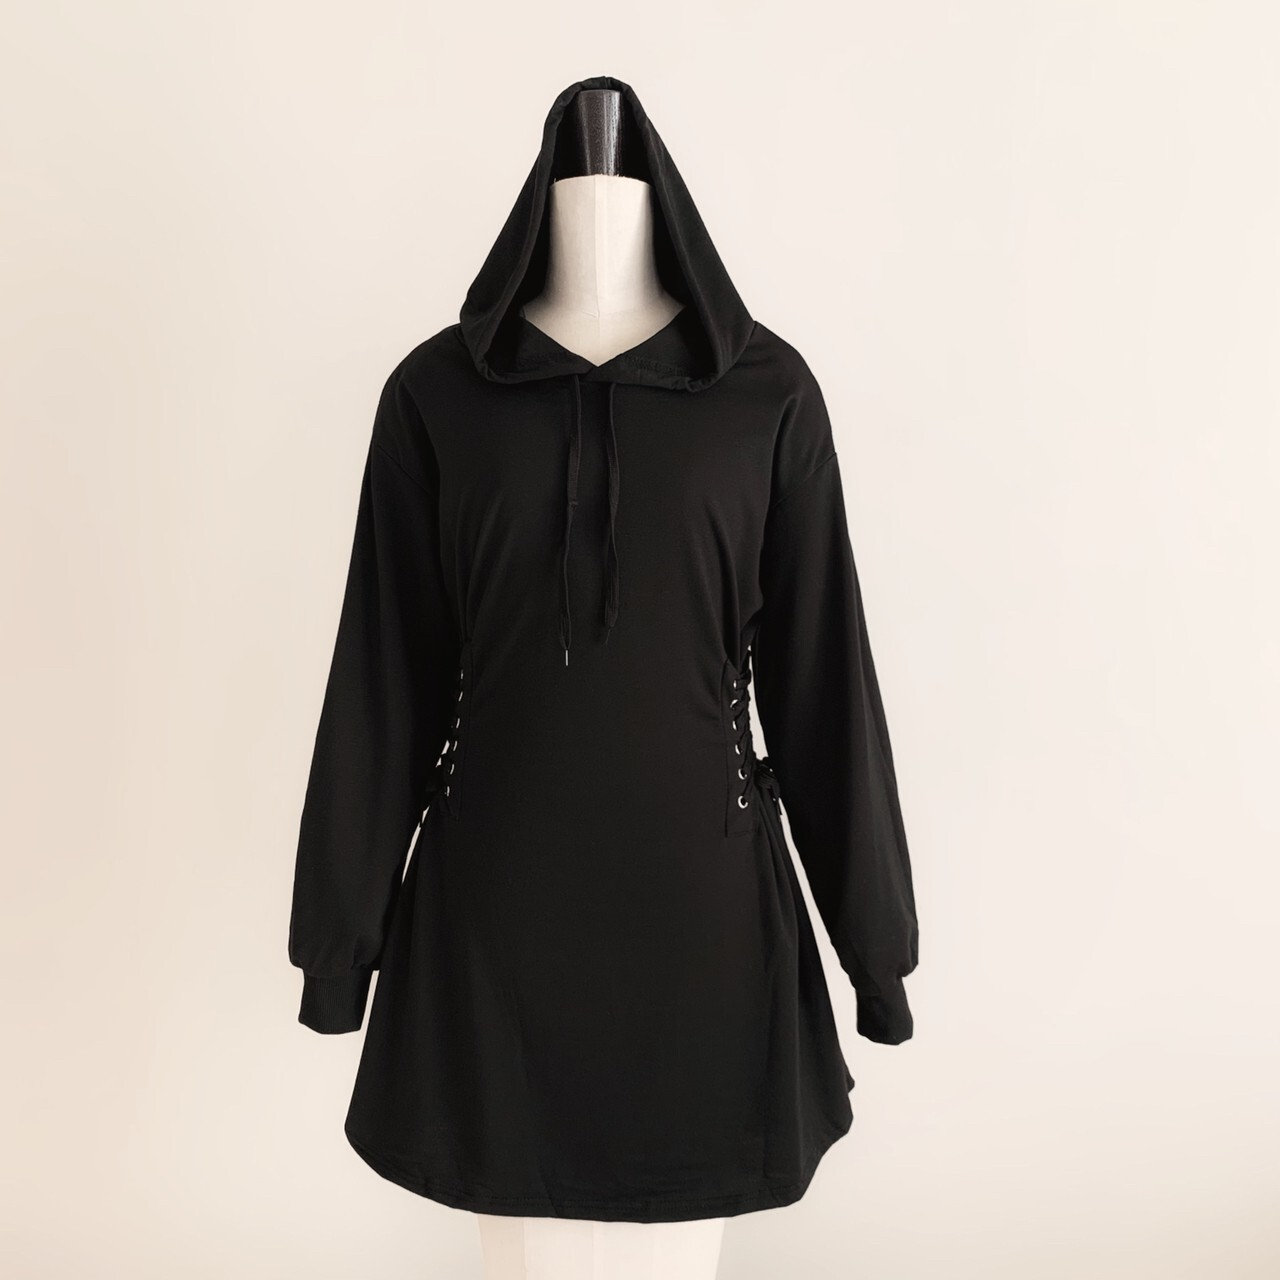 【meltie】lace up hoodie one-piece